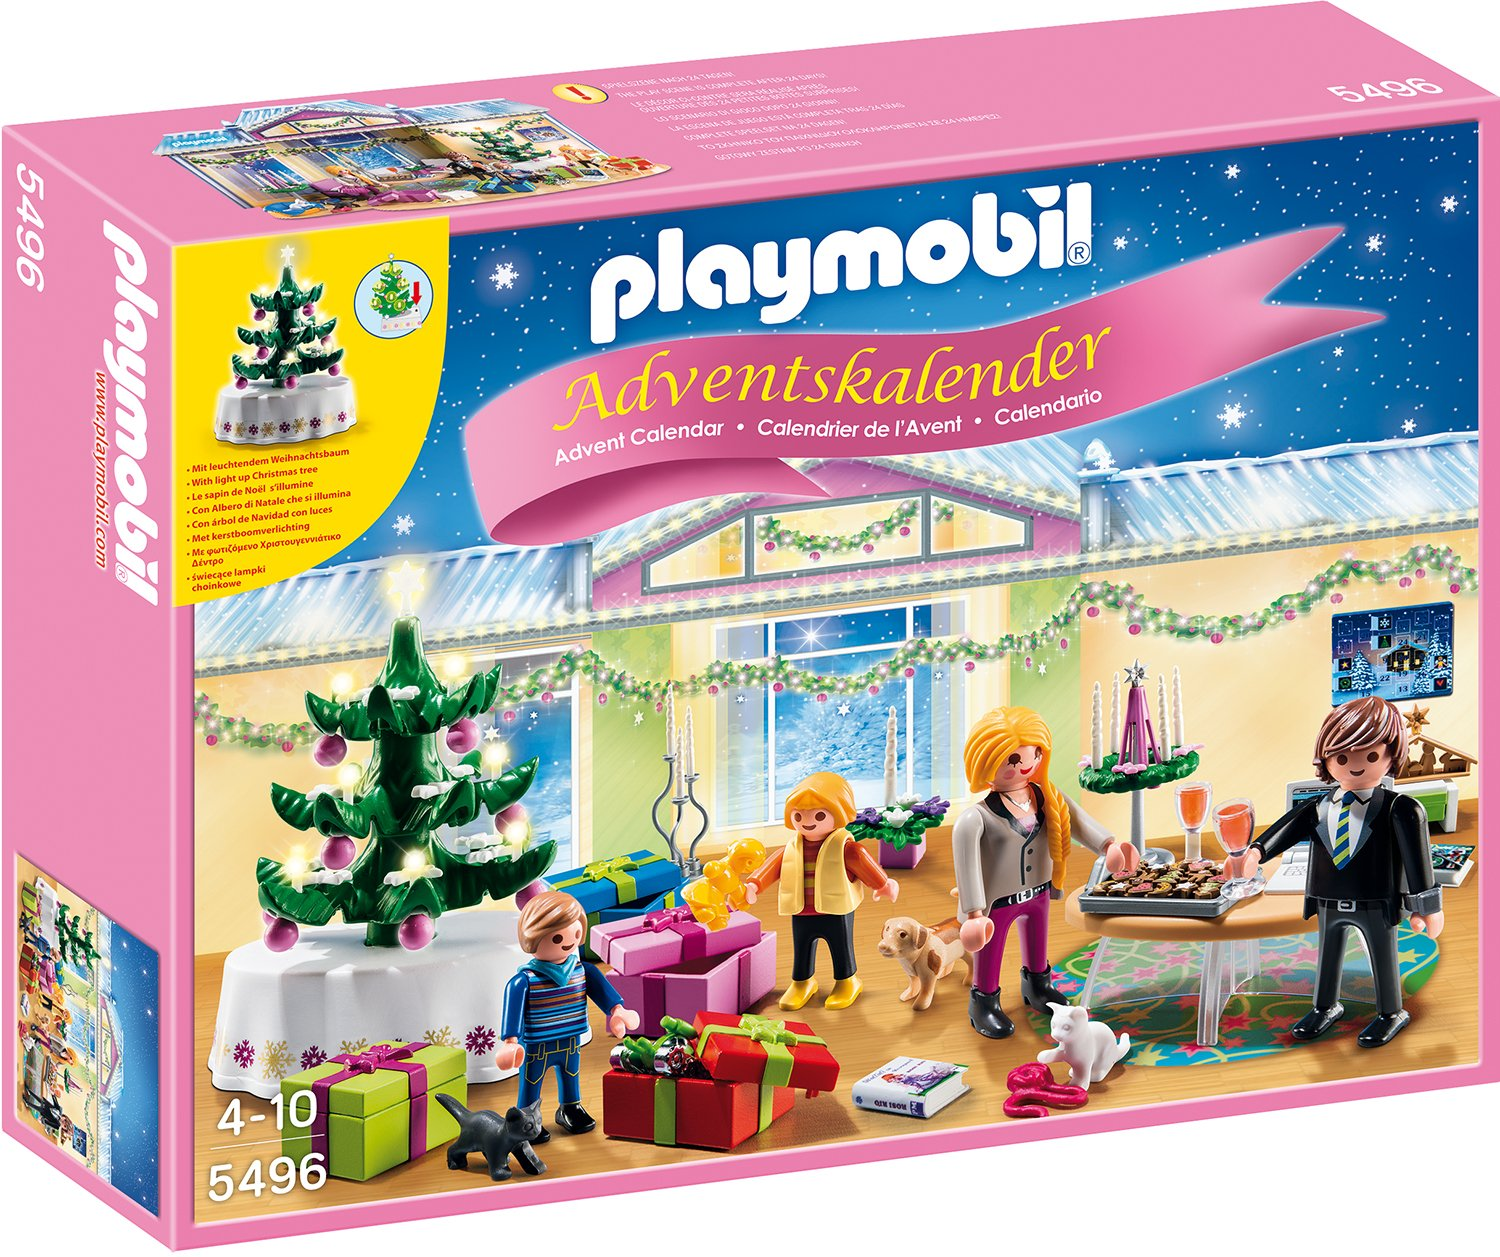 playmobil adventskalender 2015 piraten bauernhof ankleide. Black Bedroom Furniture Sets. Home Design Ideas